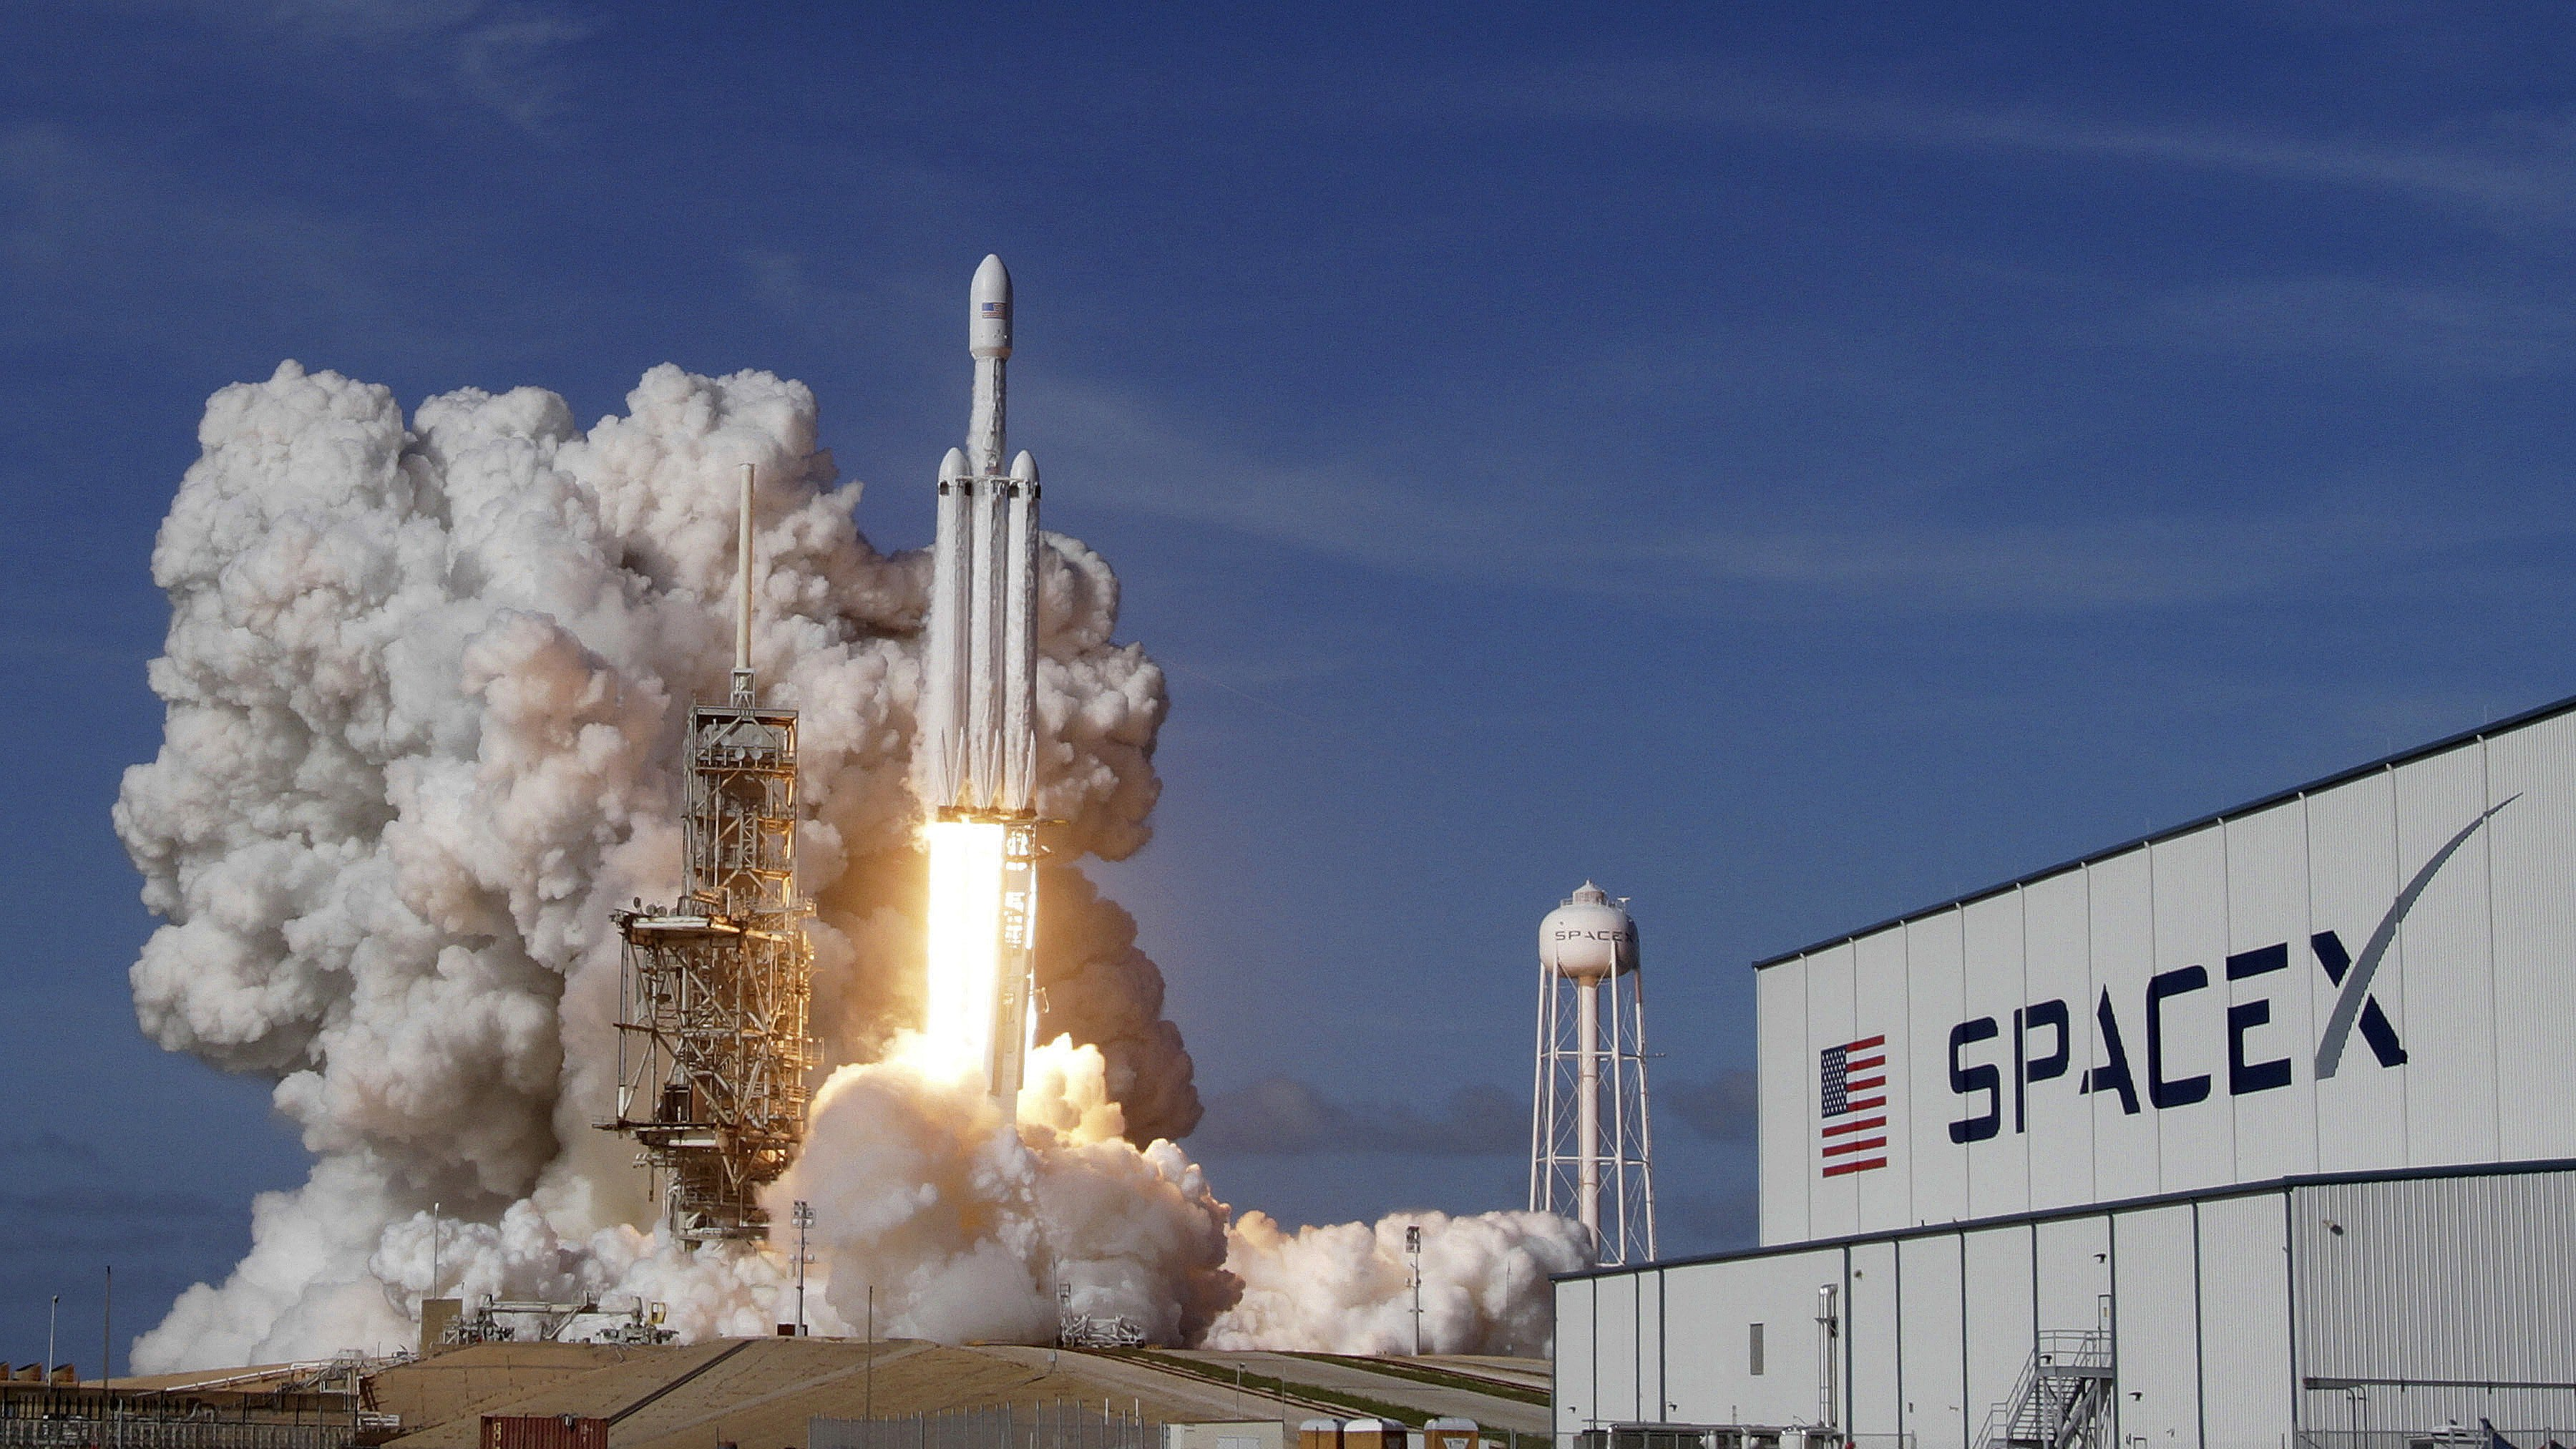 Elon Musk and SpaceX have filed a lawsuit against NASA